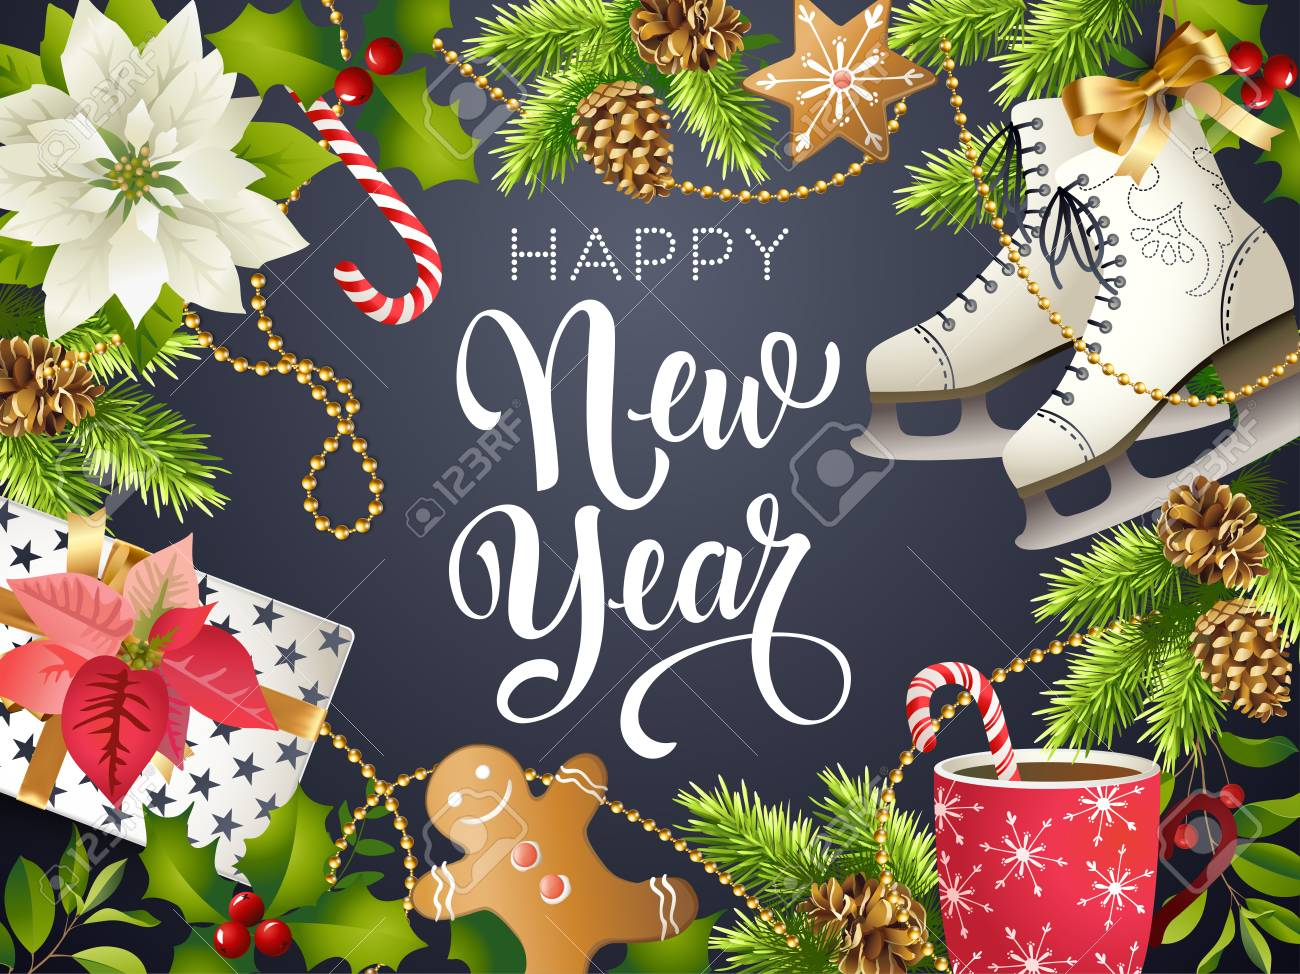 happy new year theme vector illustration of xmas party 2018 gold and black colors place